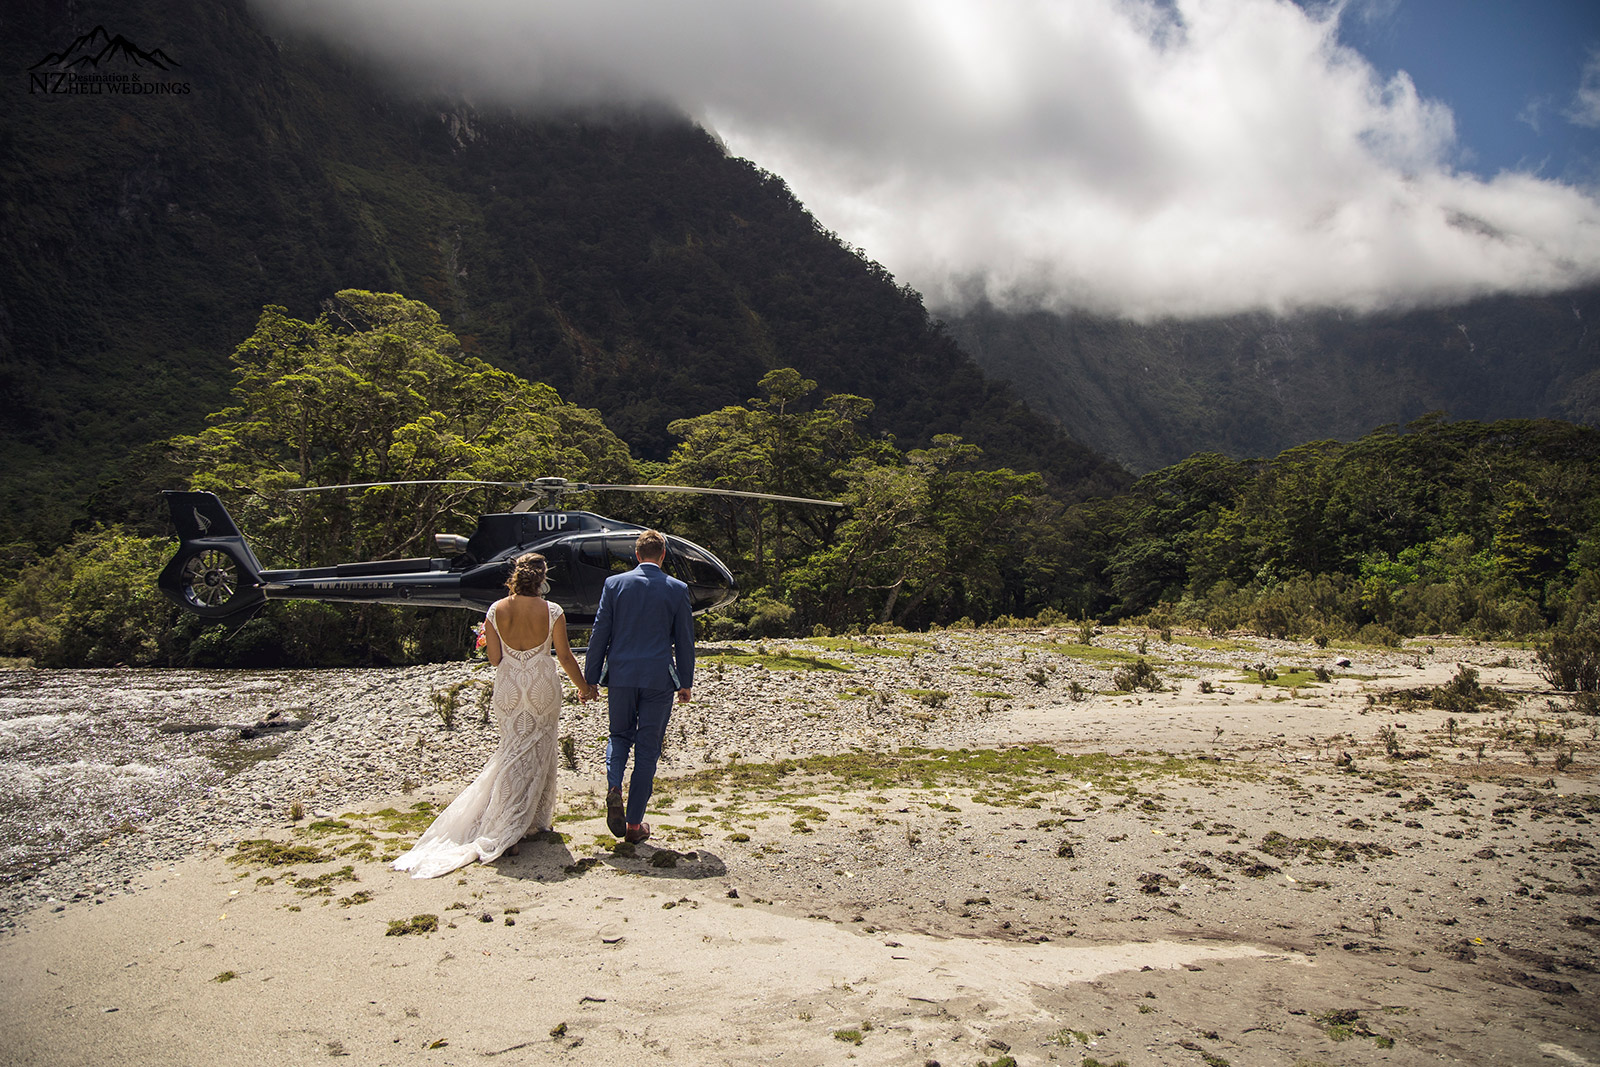 Secret wedding location by helicopter